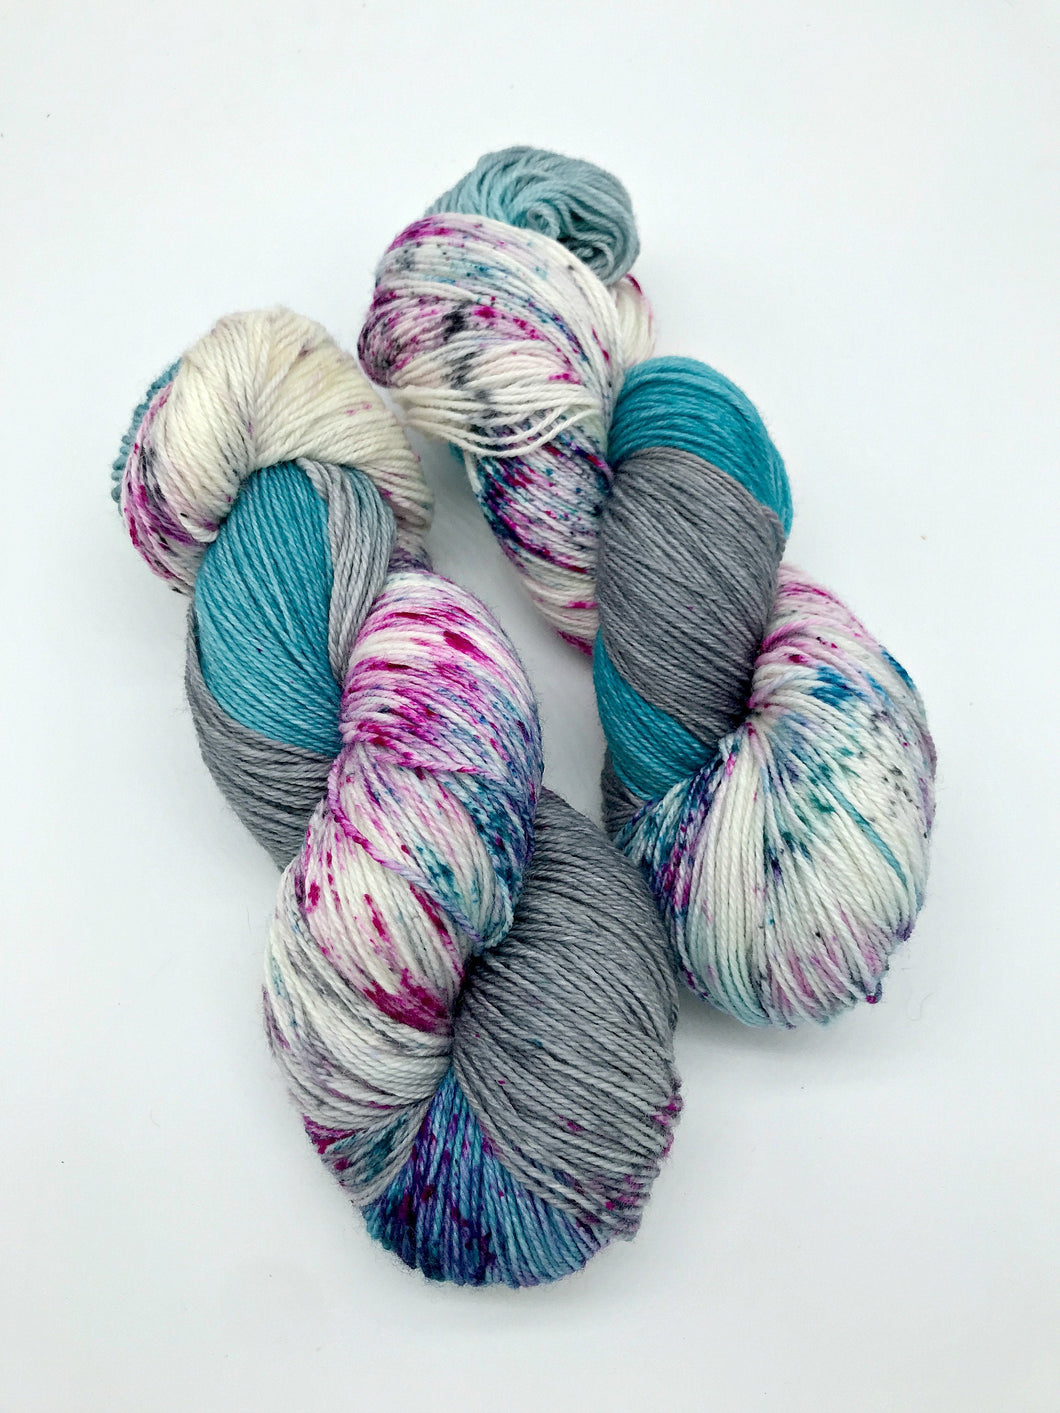 Night Drifter - Hand Dyed Fingering -  - 3 PLY - 80/20 SW Merino/ Nylon in blue, grey and speckled for knitting and Crochet